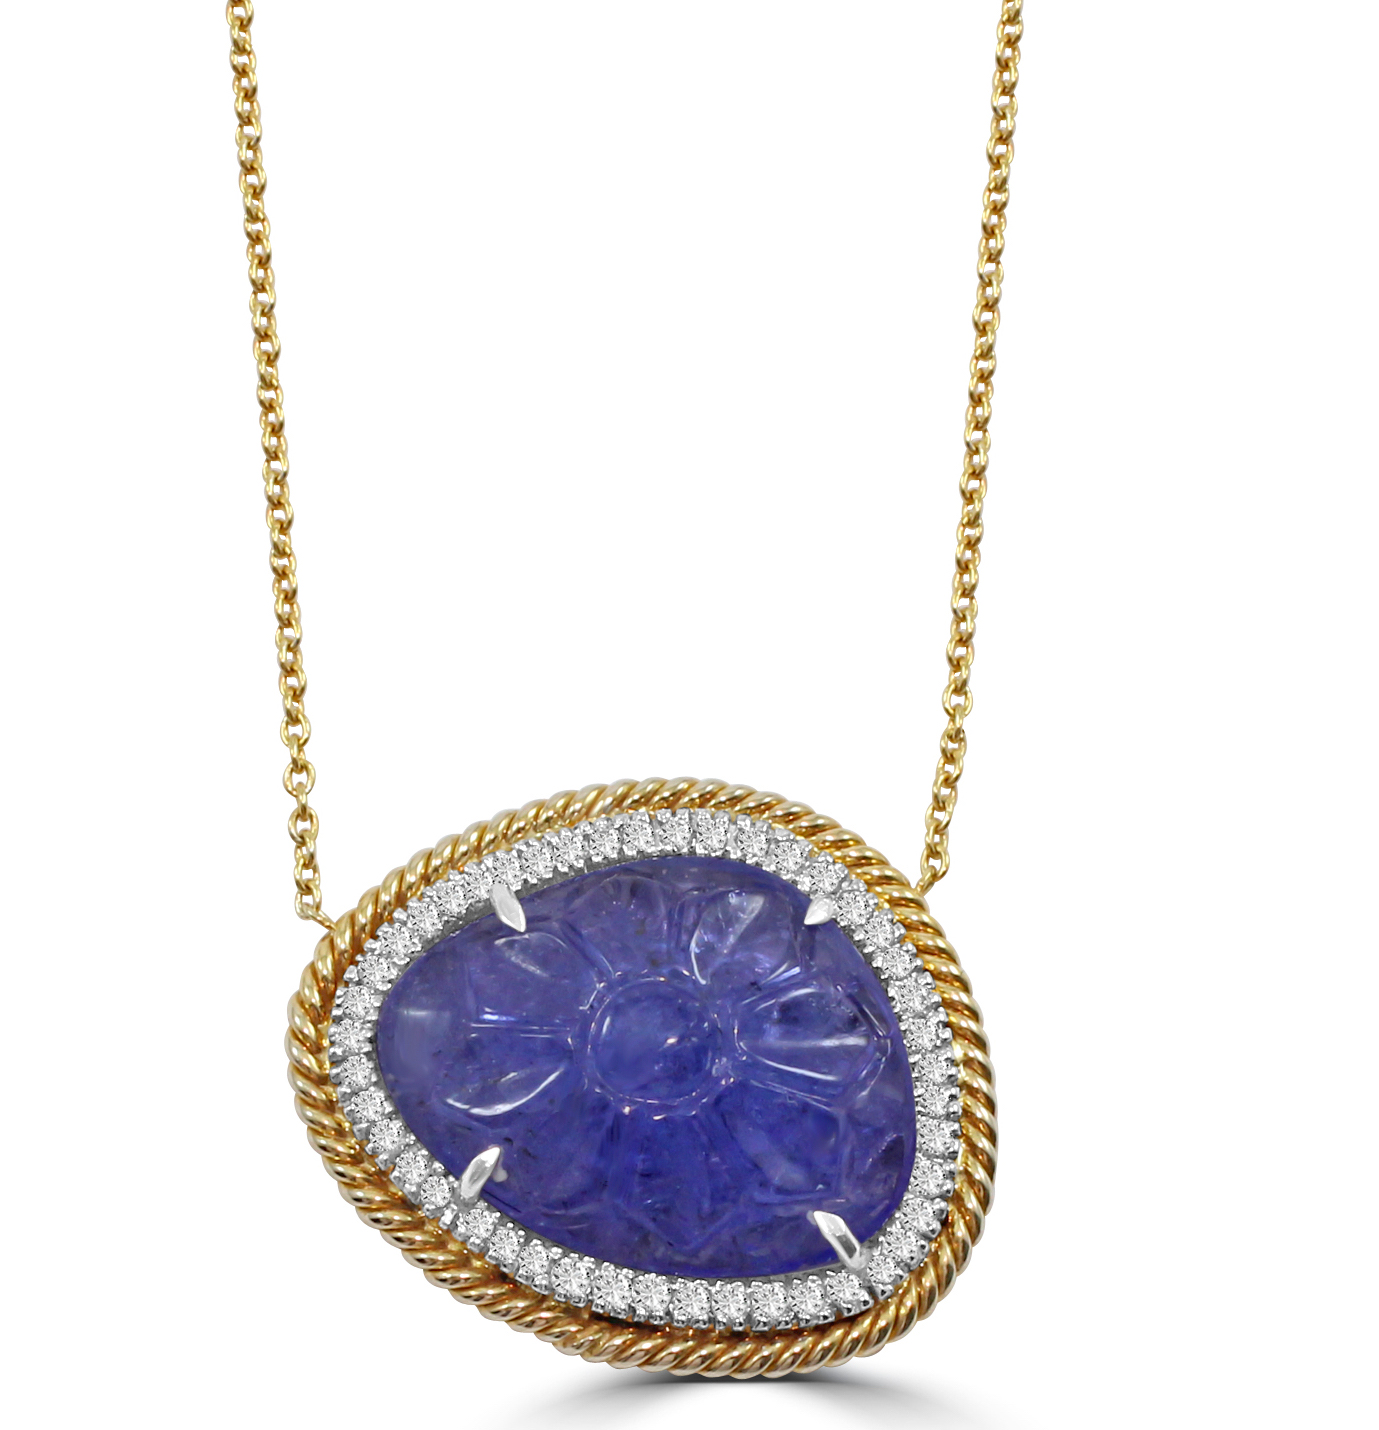 Vivaan carved tanzanite pendant | JCK On Your Market